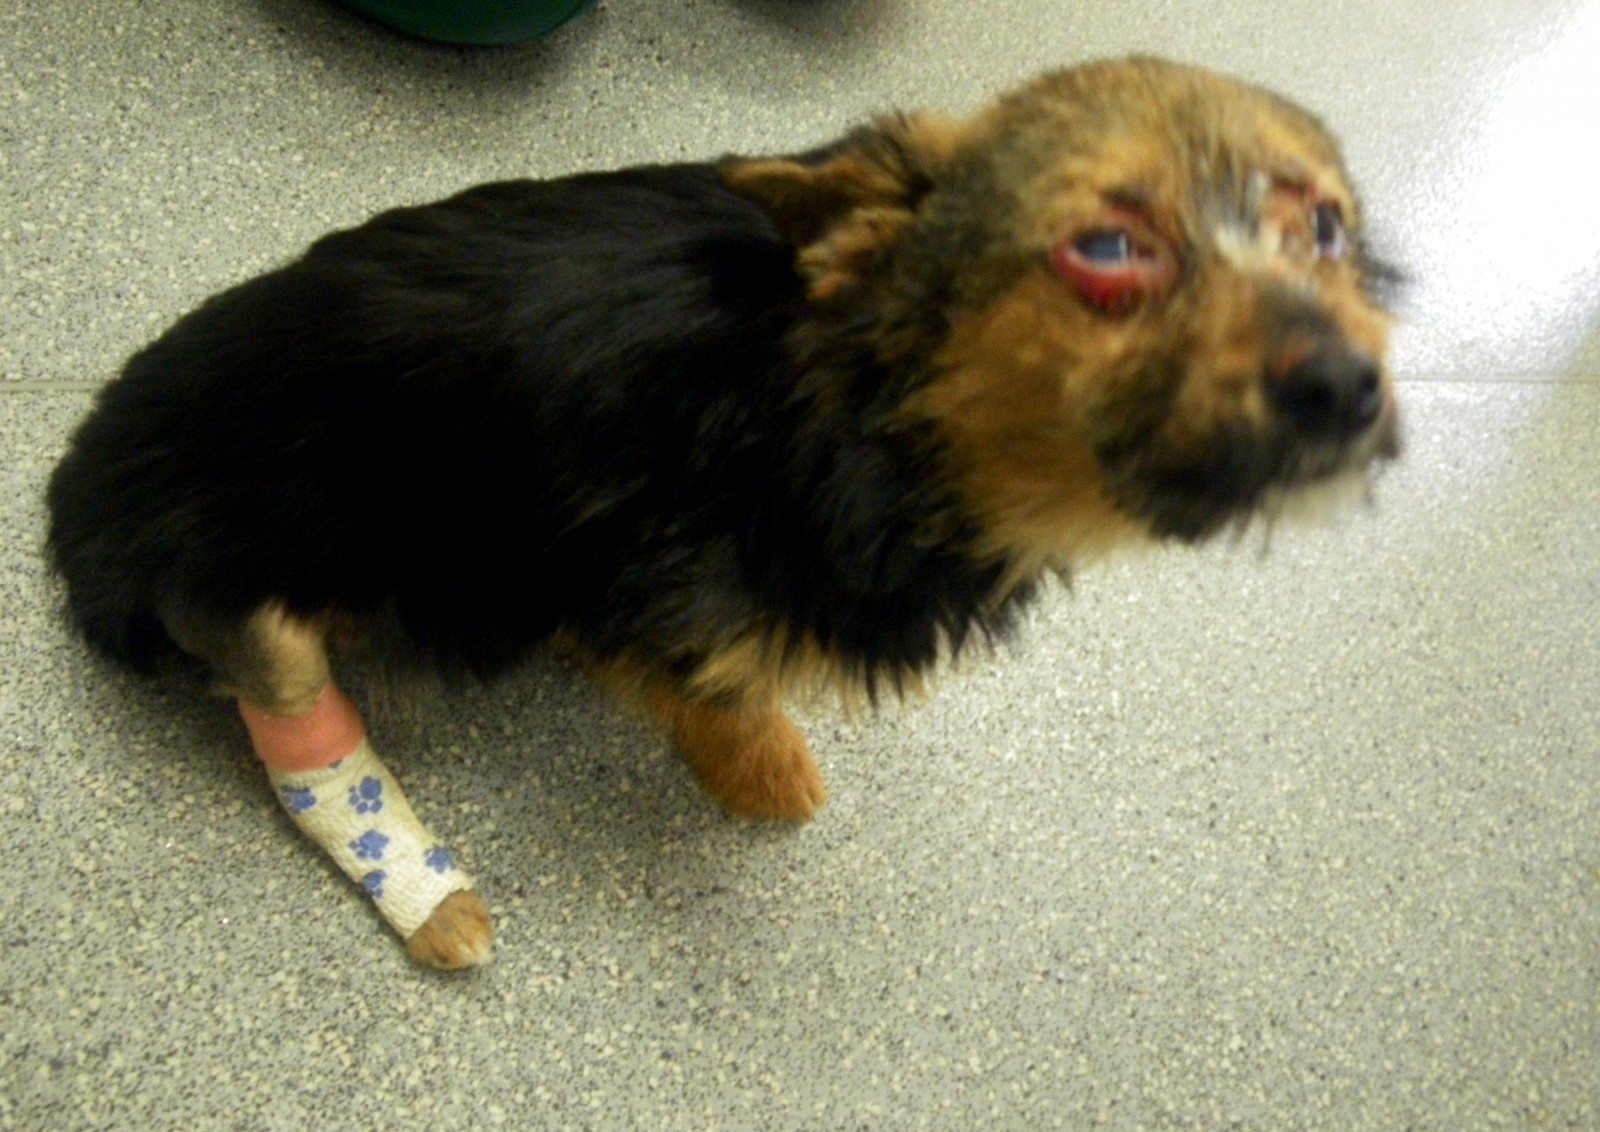 This tiny dog was subjected to the worst cruelty the RSPCA has ever seen